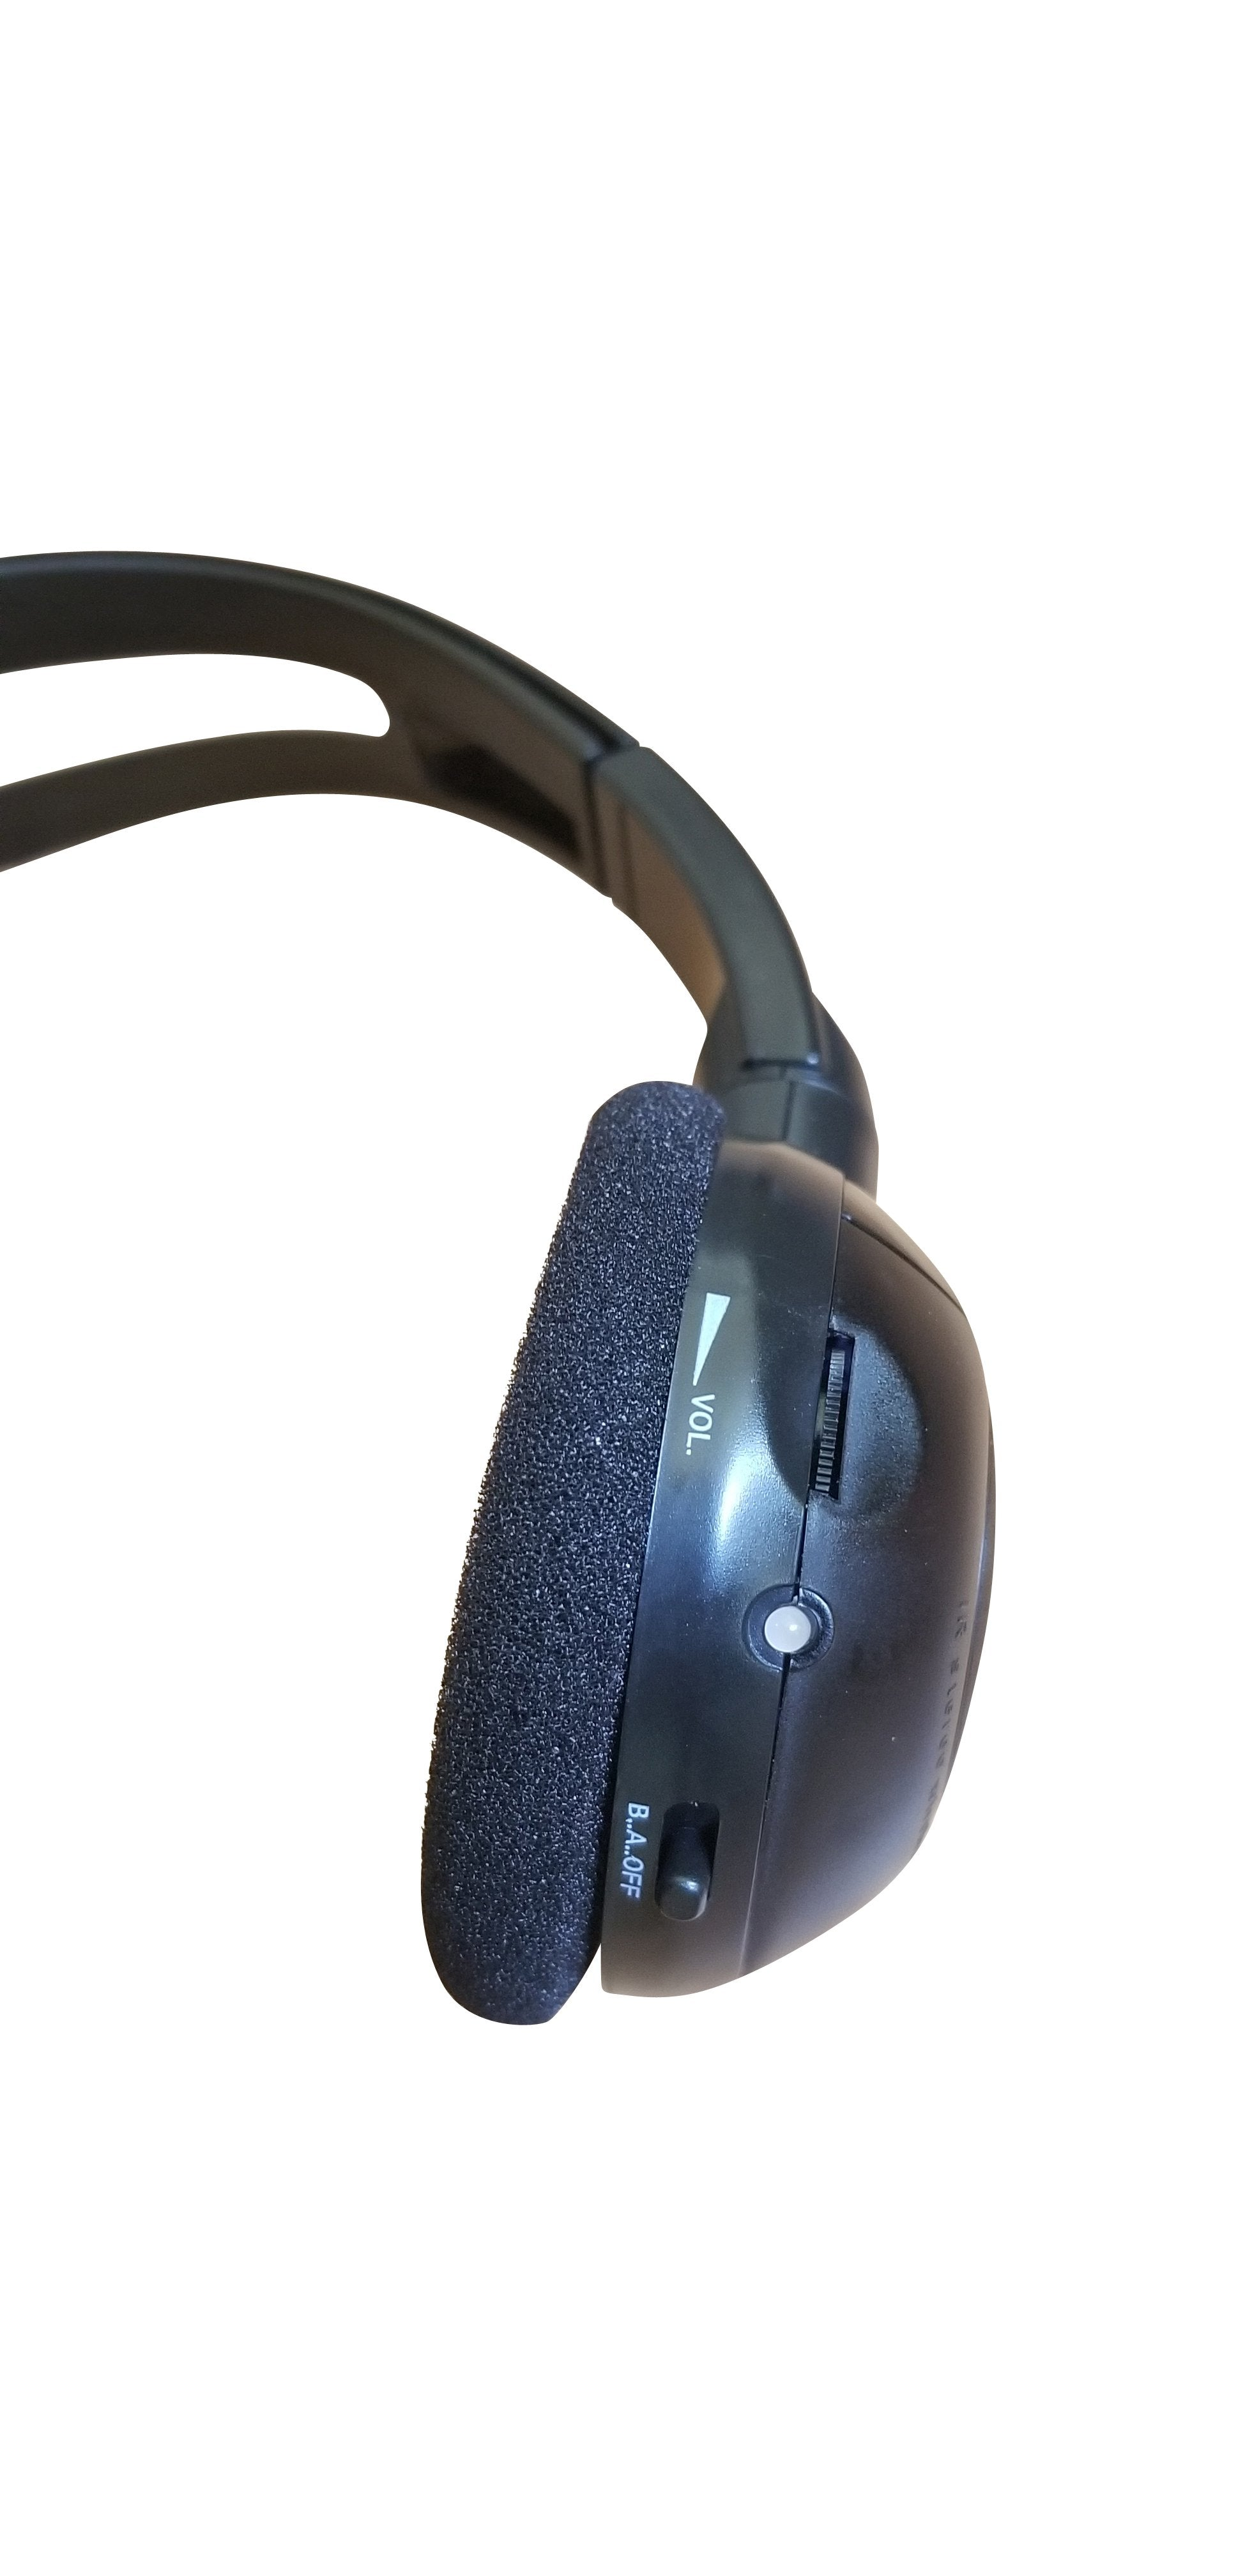 2009 Mazda CX9 Wireless DVD Headphone